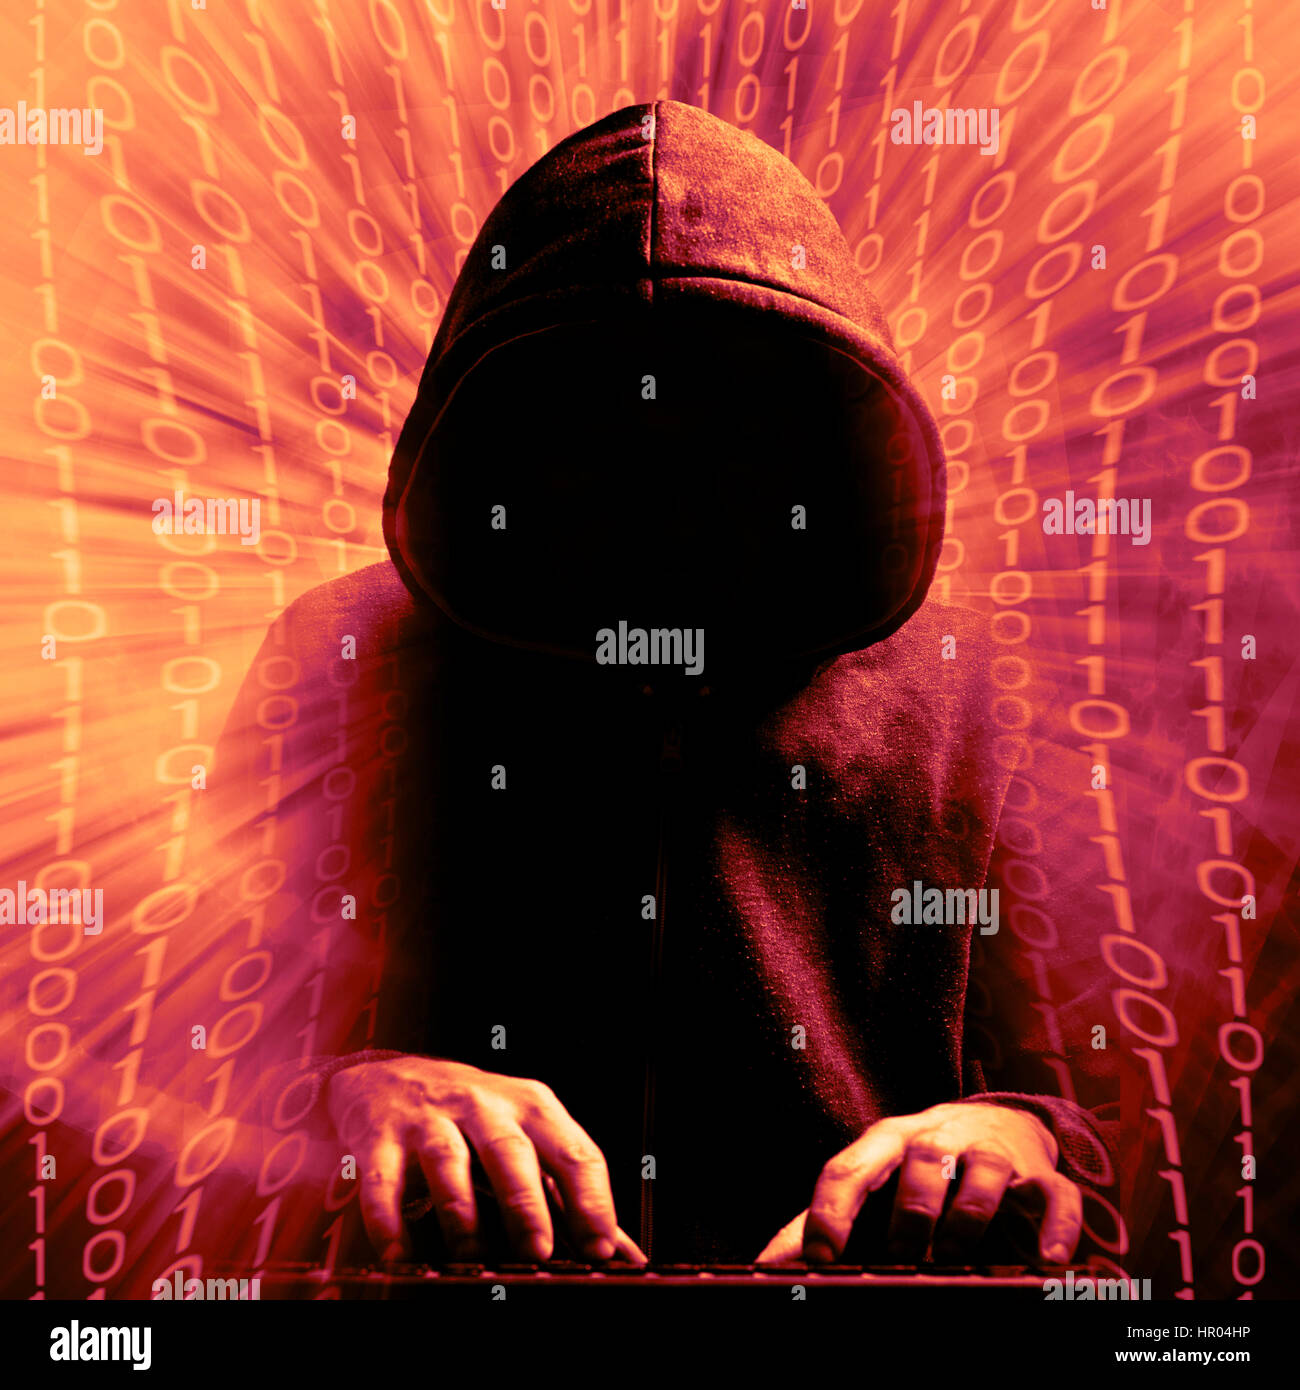 Hacker en action, la cybercriminalité concept Photo Stock